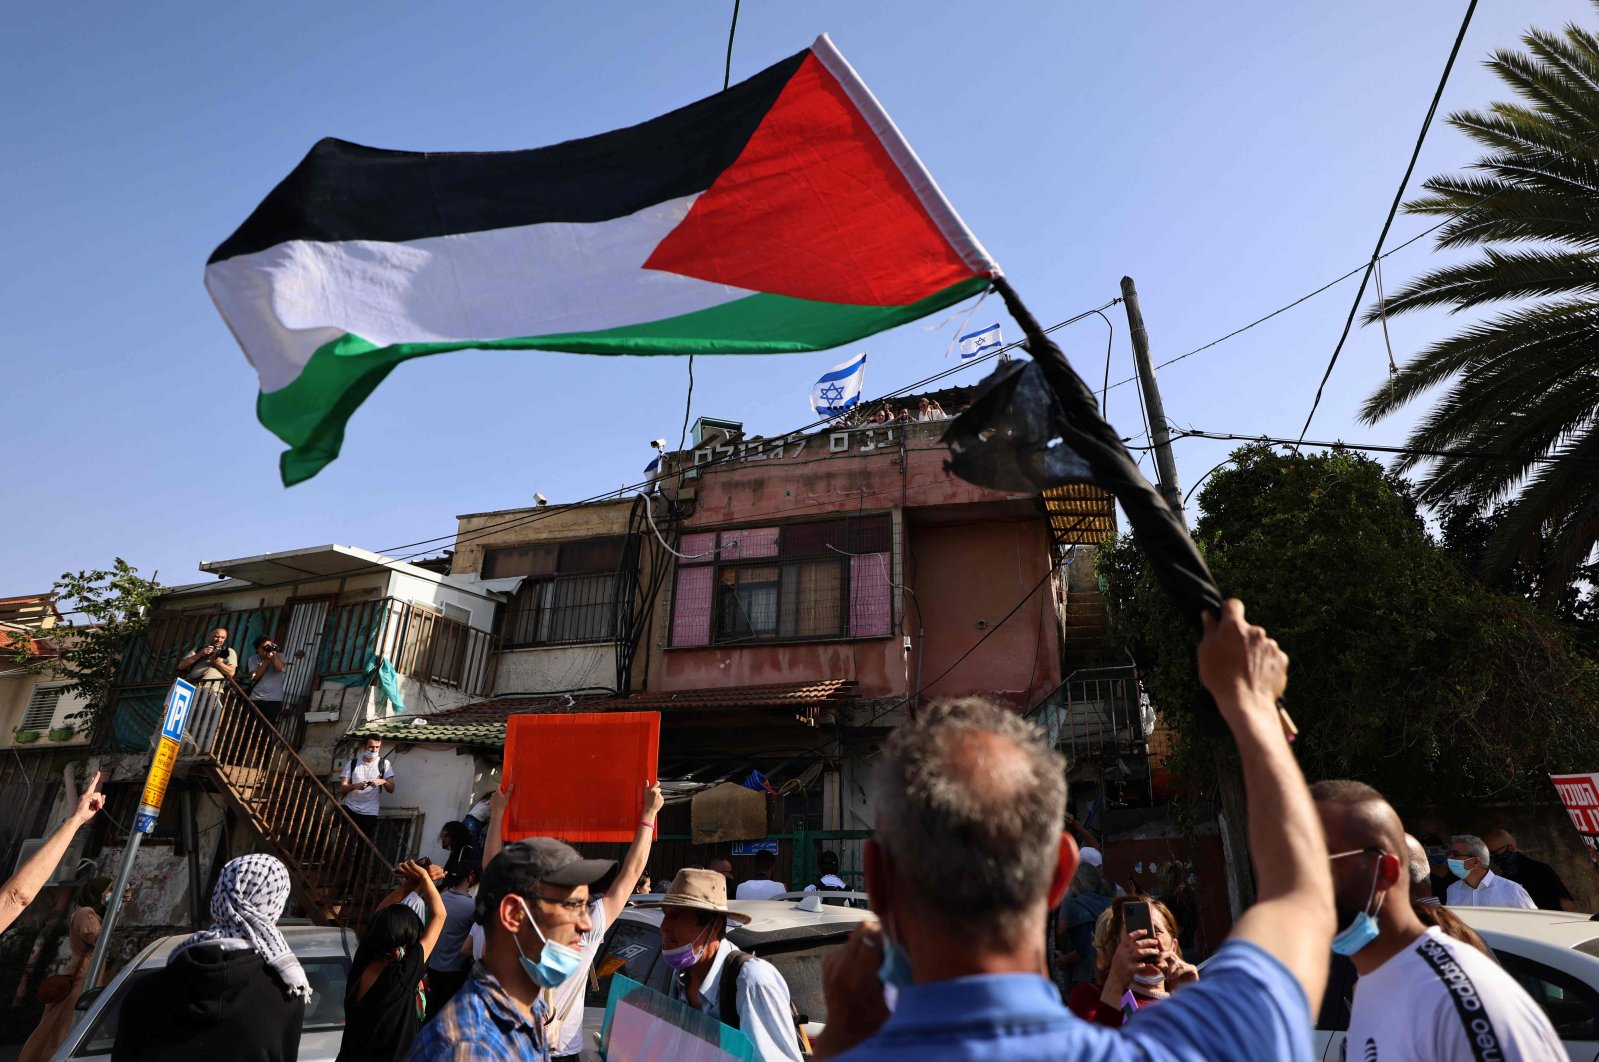 Palestinian and Israeli activists gather in front of Israeli settlers' houses during a demonstration against the expulsion of Palestinian families from their homes, in the Palestinian neighbourhood of Sheikh Jarrah in Israeli-annexed East Jerusalem, April 16, 2021. (AFP Photo)